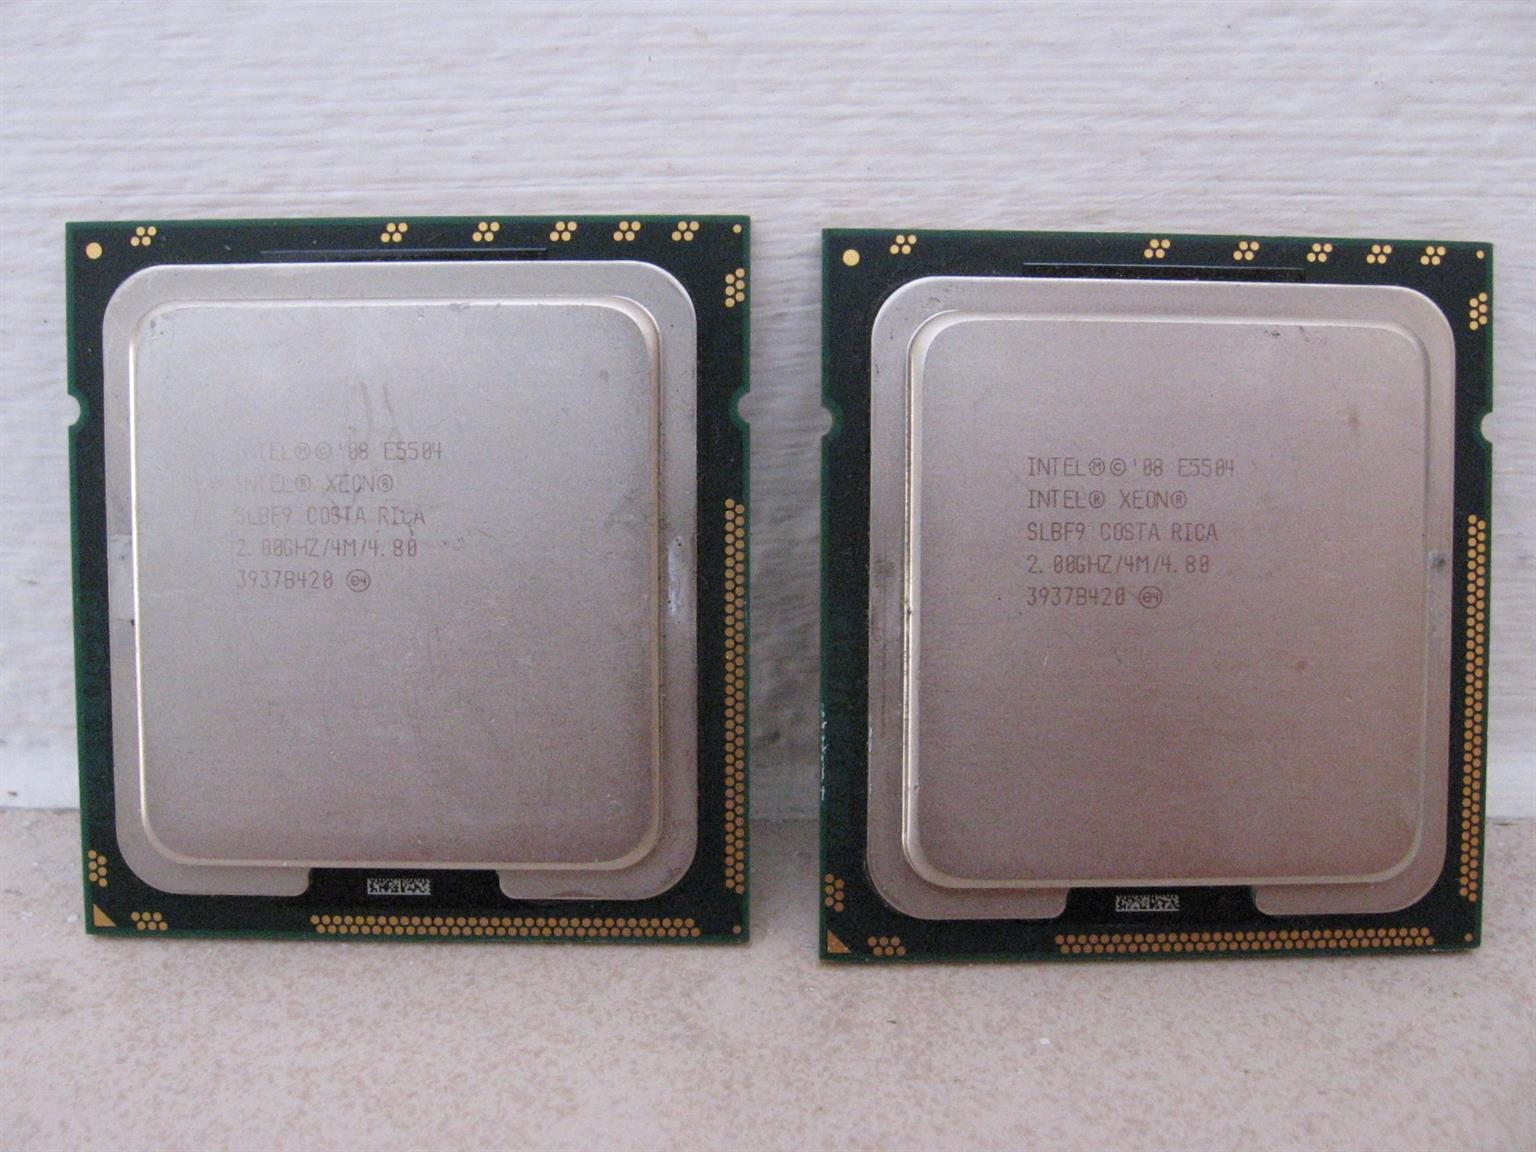 2x Intel Xeon E5504 Server CPUs for sale or to swap for ONE i5 or i7 3rd gen CPU